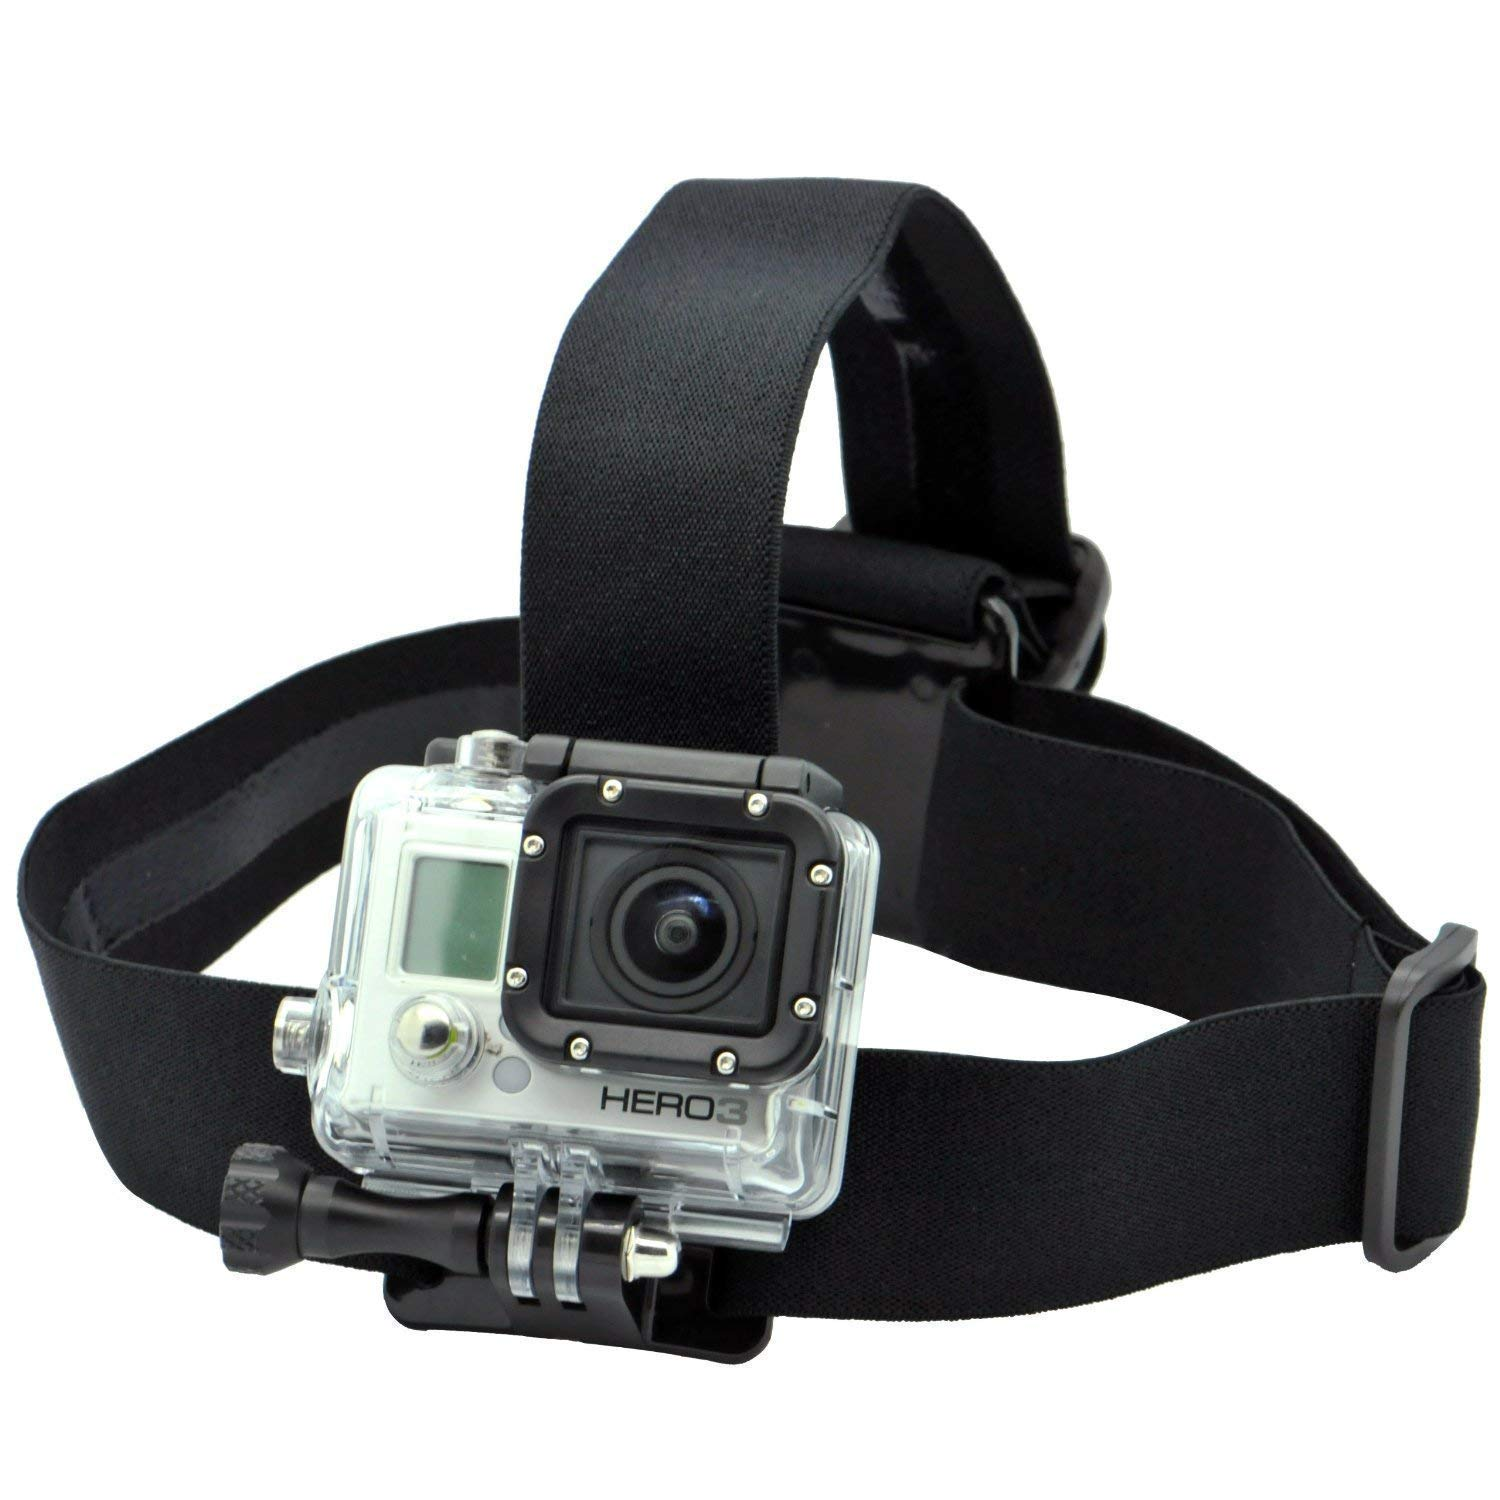 Multi-Function Adjustable Belt Cellphone Selfie Head Mount Strap for Sony Action Cam/Gopro Hero/Cell Phone/iPhone XR XS Max X 8 7 6 Plus/Samsung LG Huawei by Supkeyer